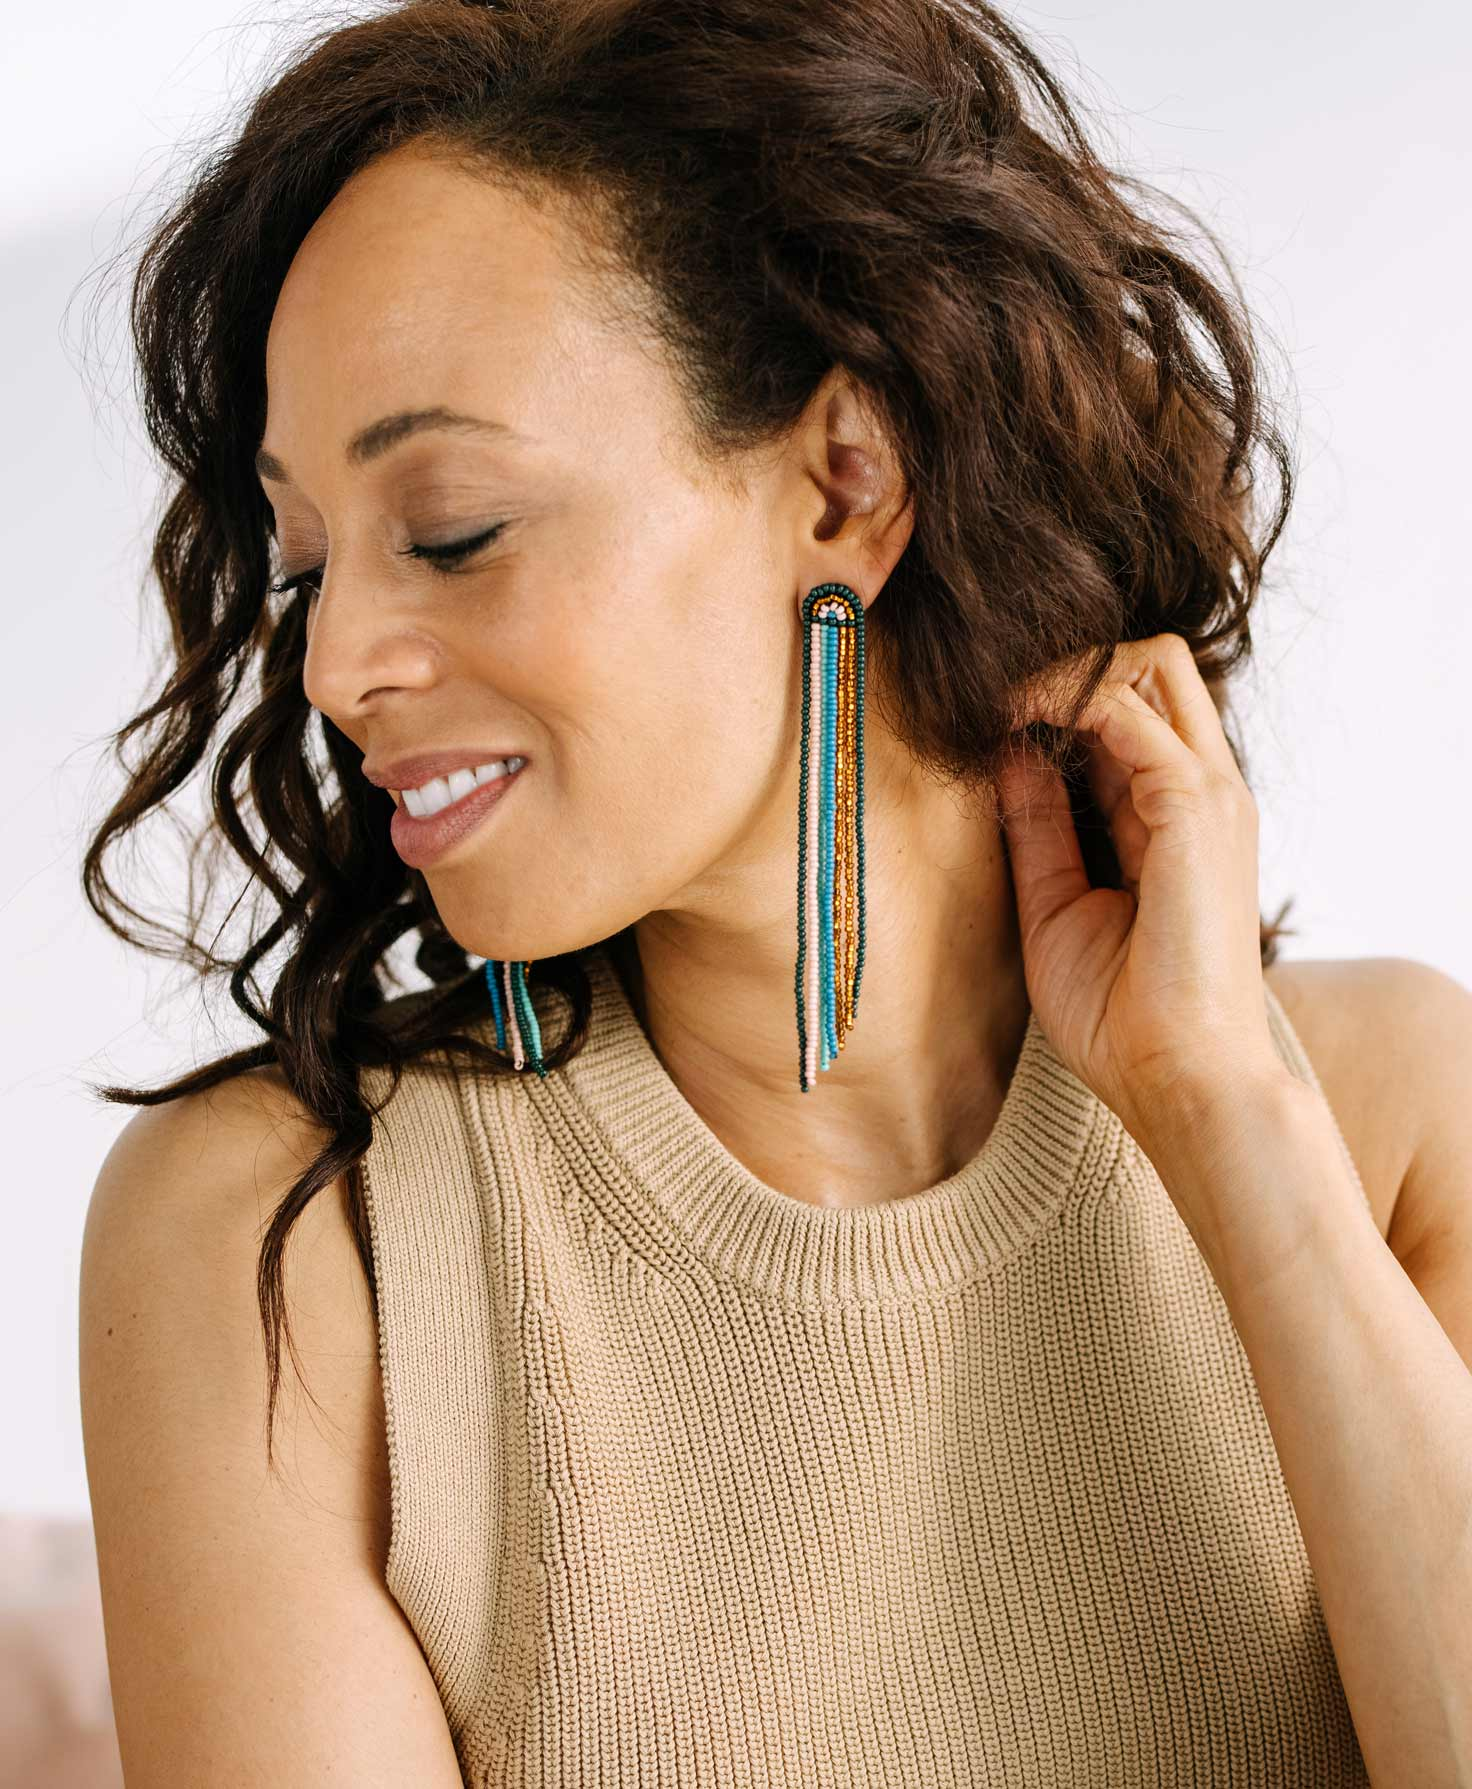 A model wears the Wonder Earrings. The long fringe of the earrings hangs down nearly the entire length of her neck. She pairs the brightly colored earrings with a simple tan top.